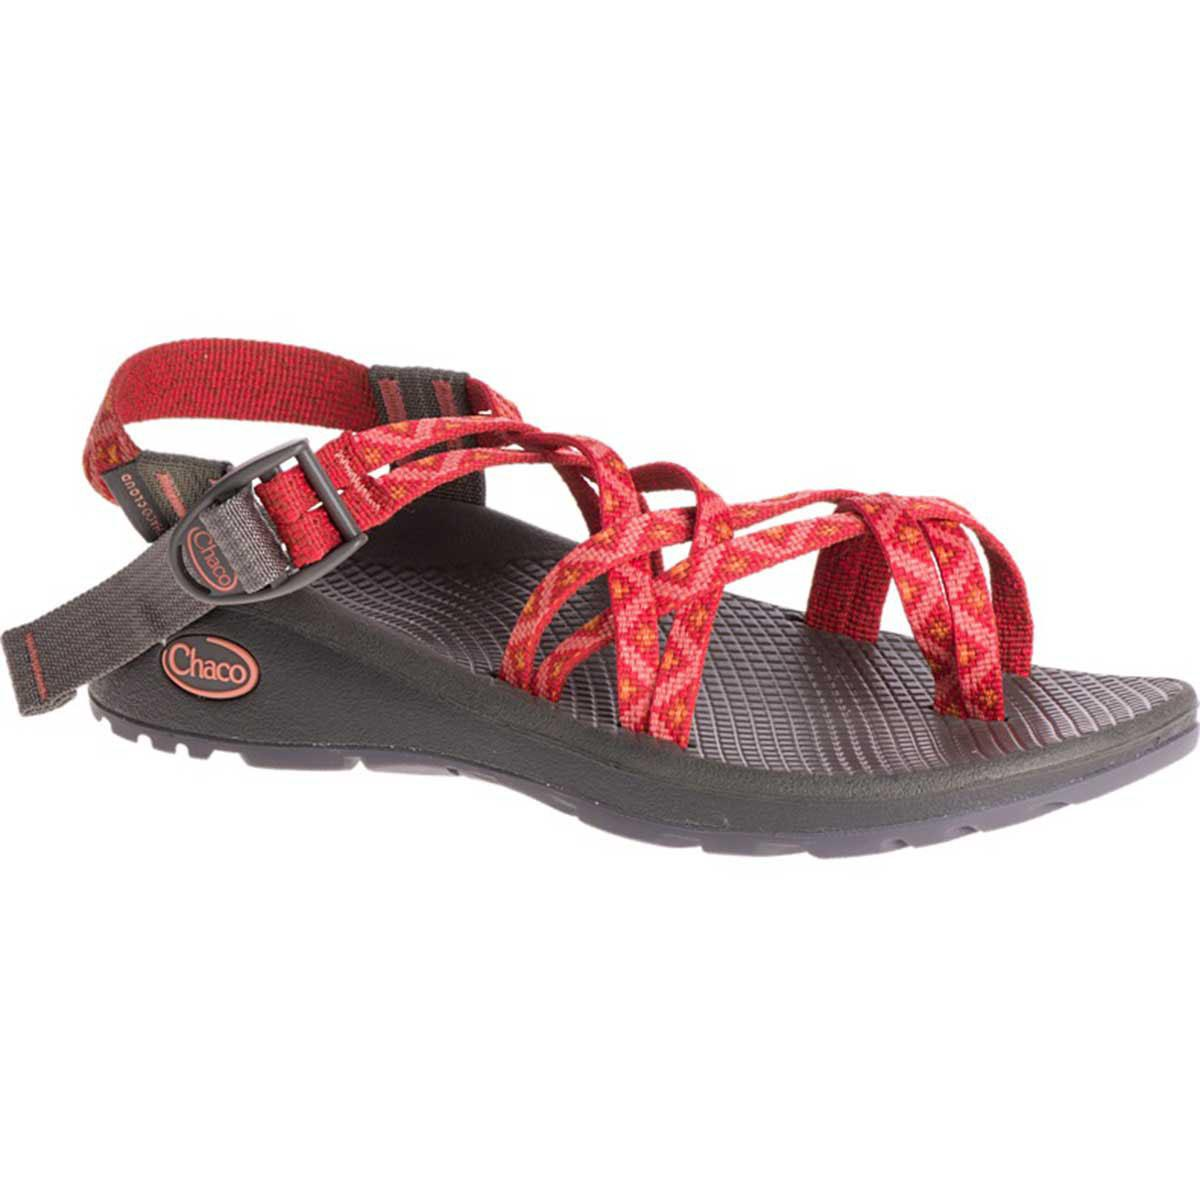 Chaco Z/Cloud X2 sandal in Peach